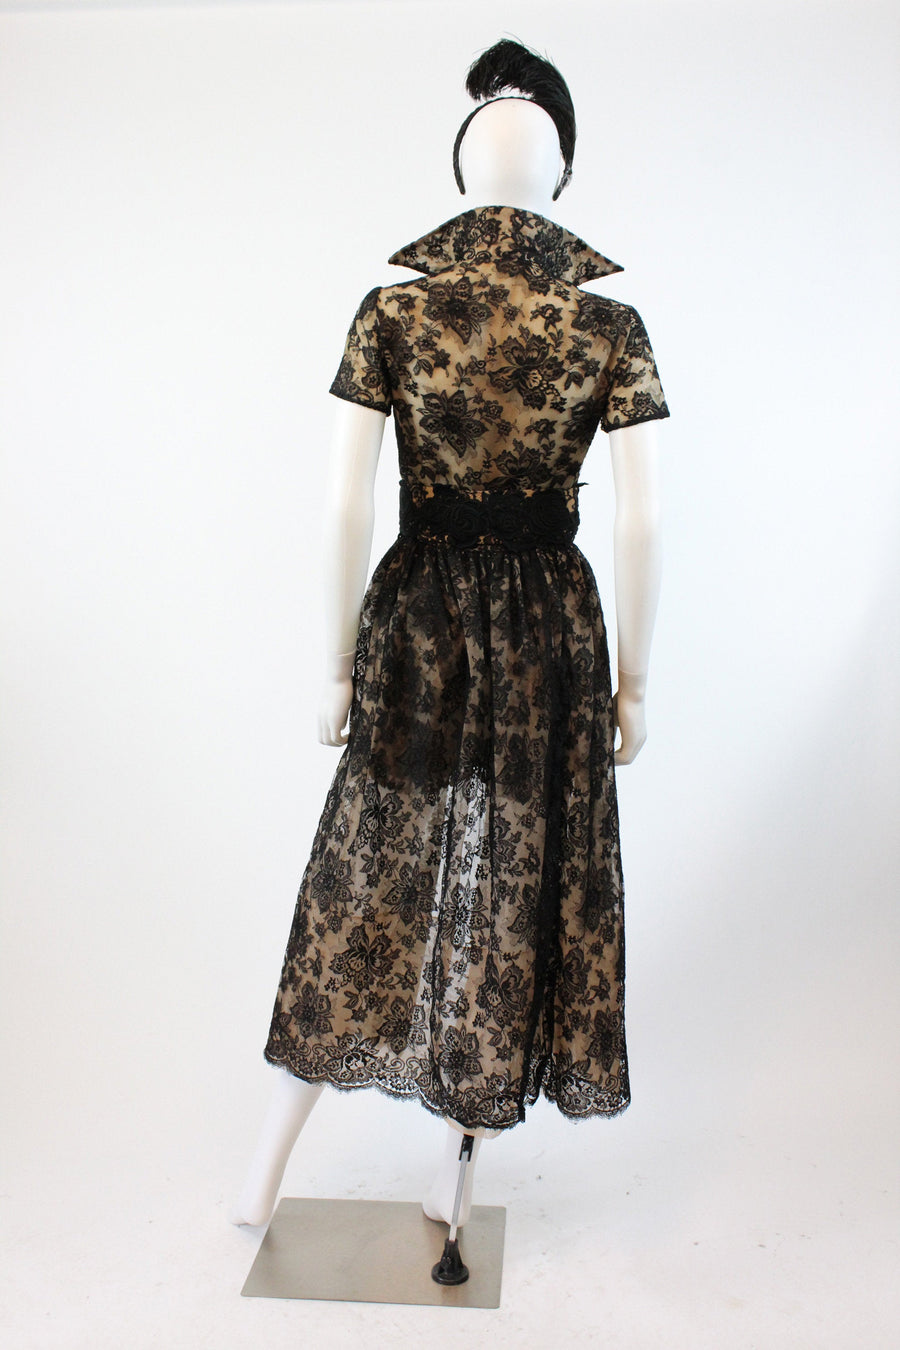 1950s RARE Lillie Rubin romper and overskirt xs | vintage lace three pieces dress | new in